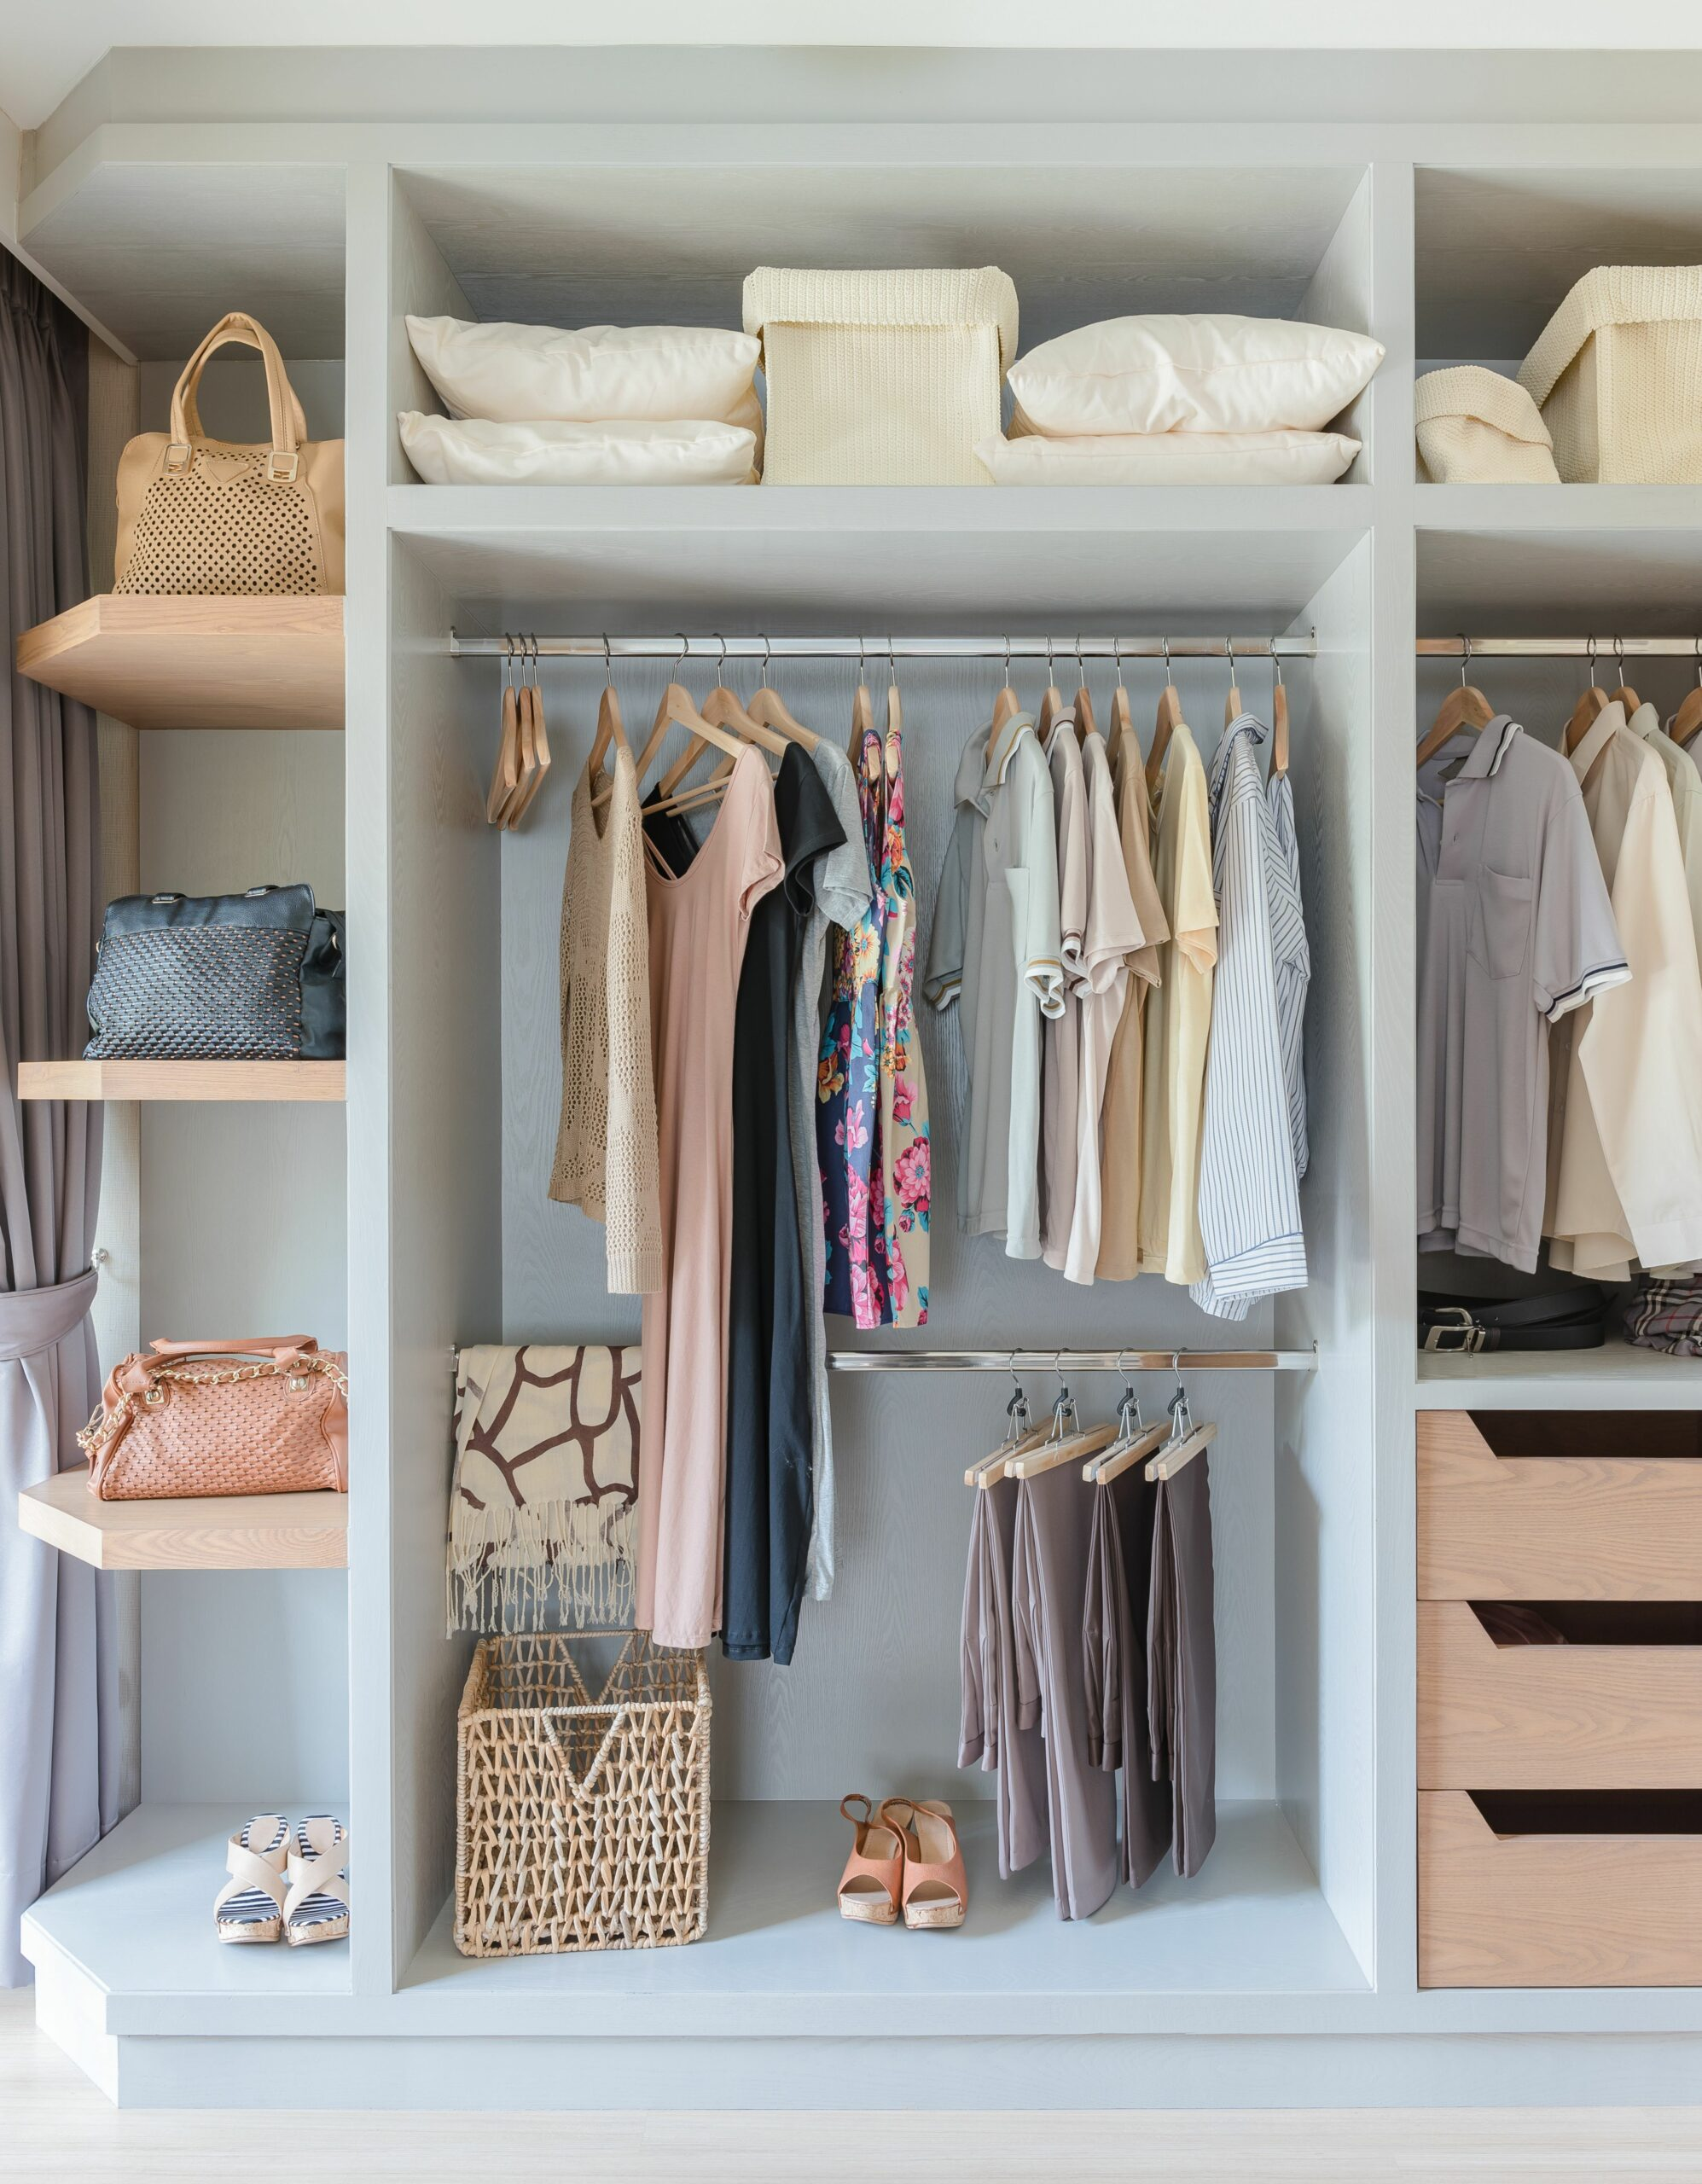 11 Best Closet Organization Ideas to Maximize Space and Style ..